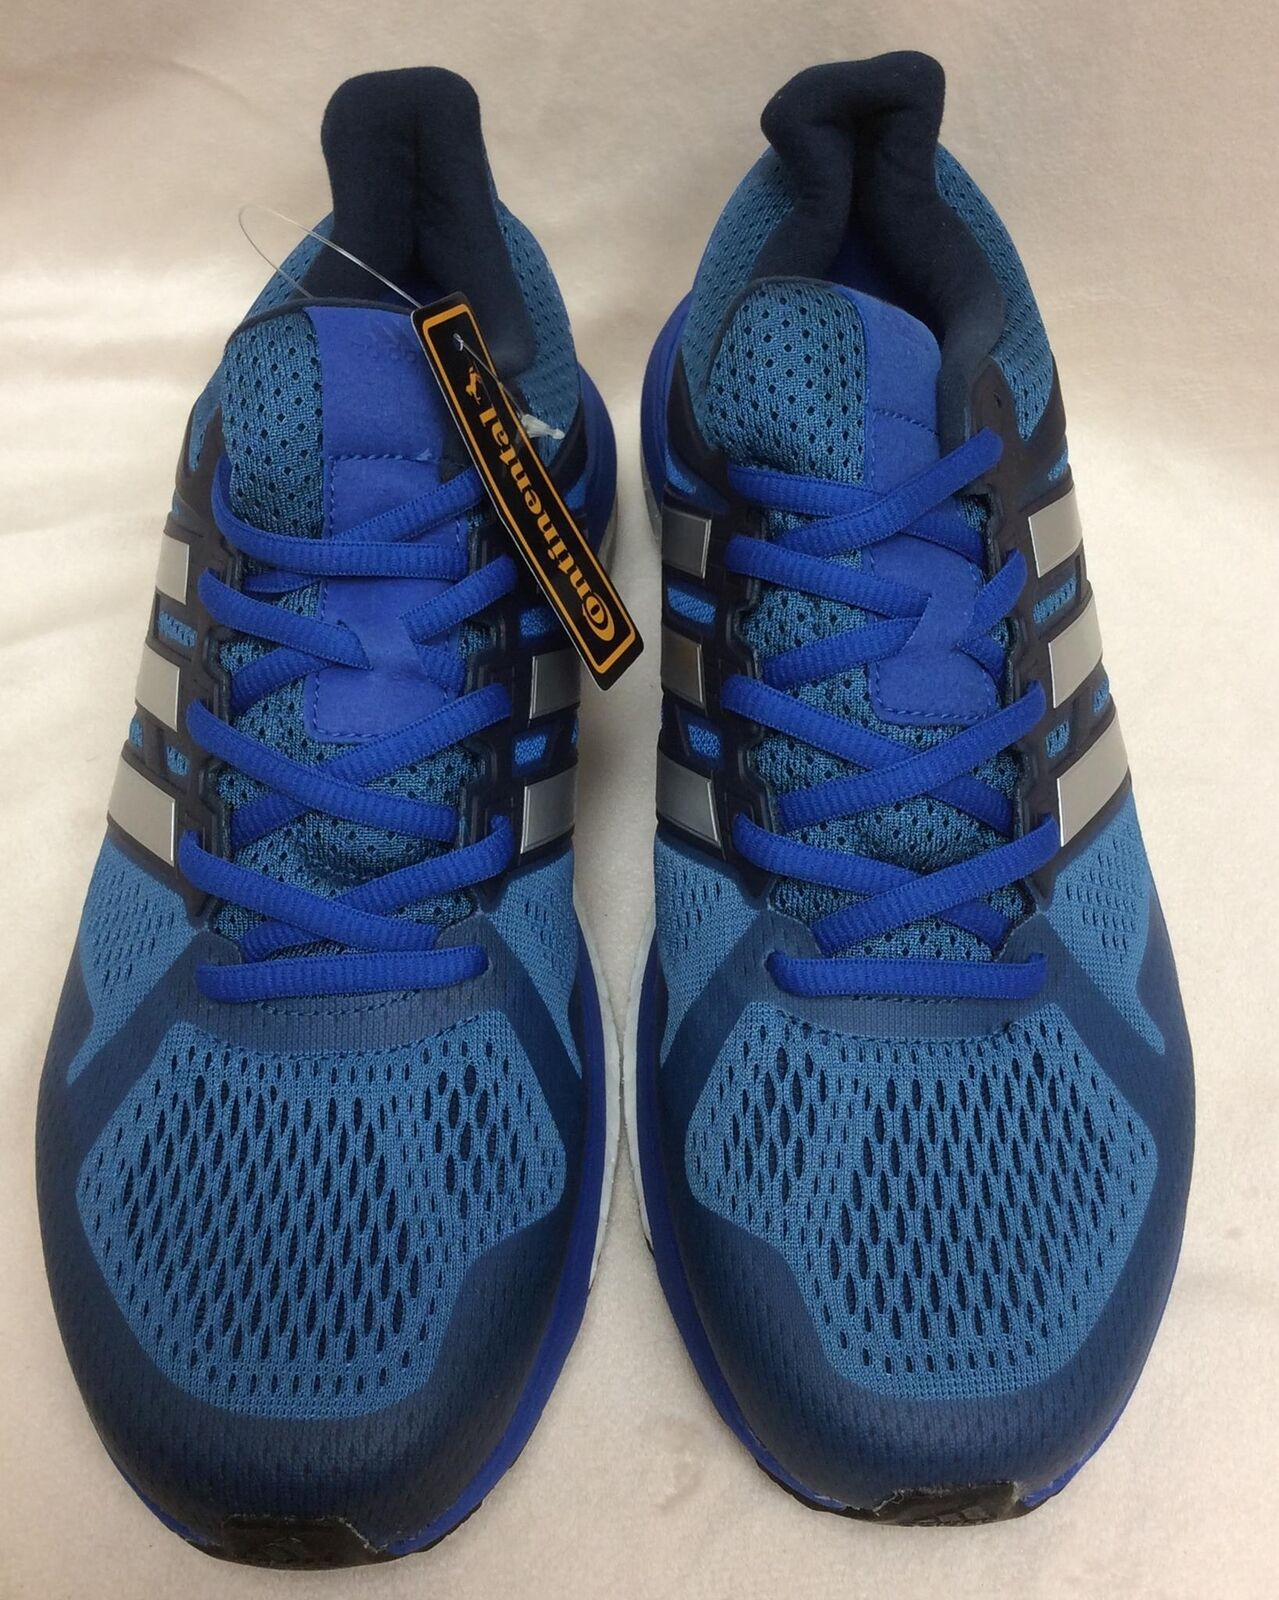 Adidas Boost Supernova St Continental Men's Running Shoes Blue Size 9.5